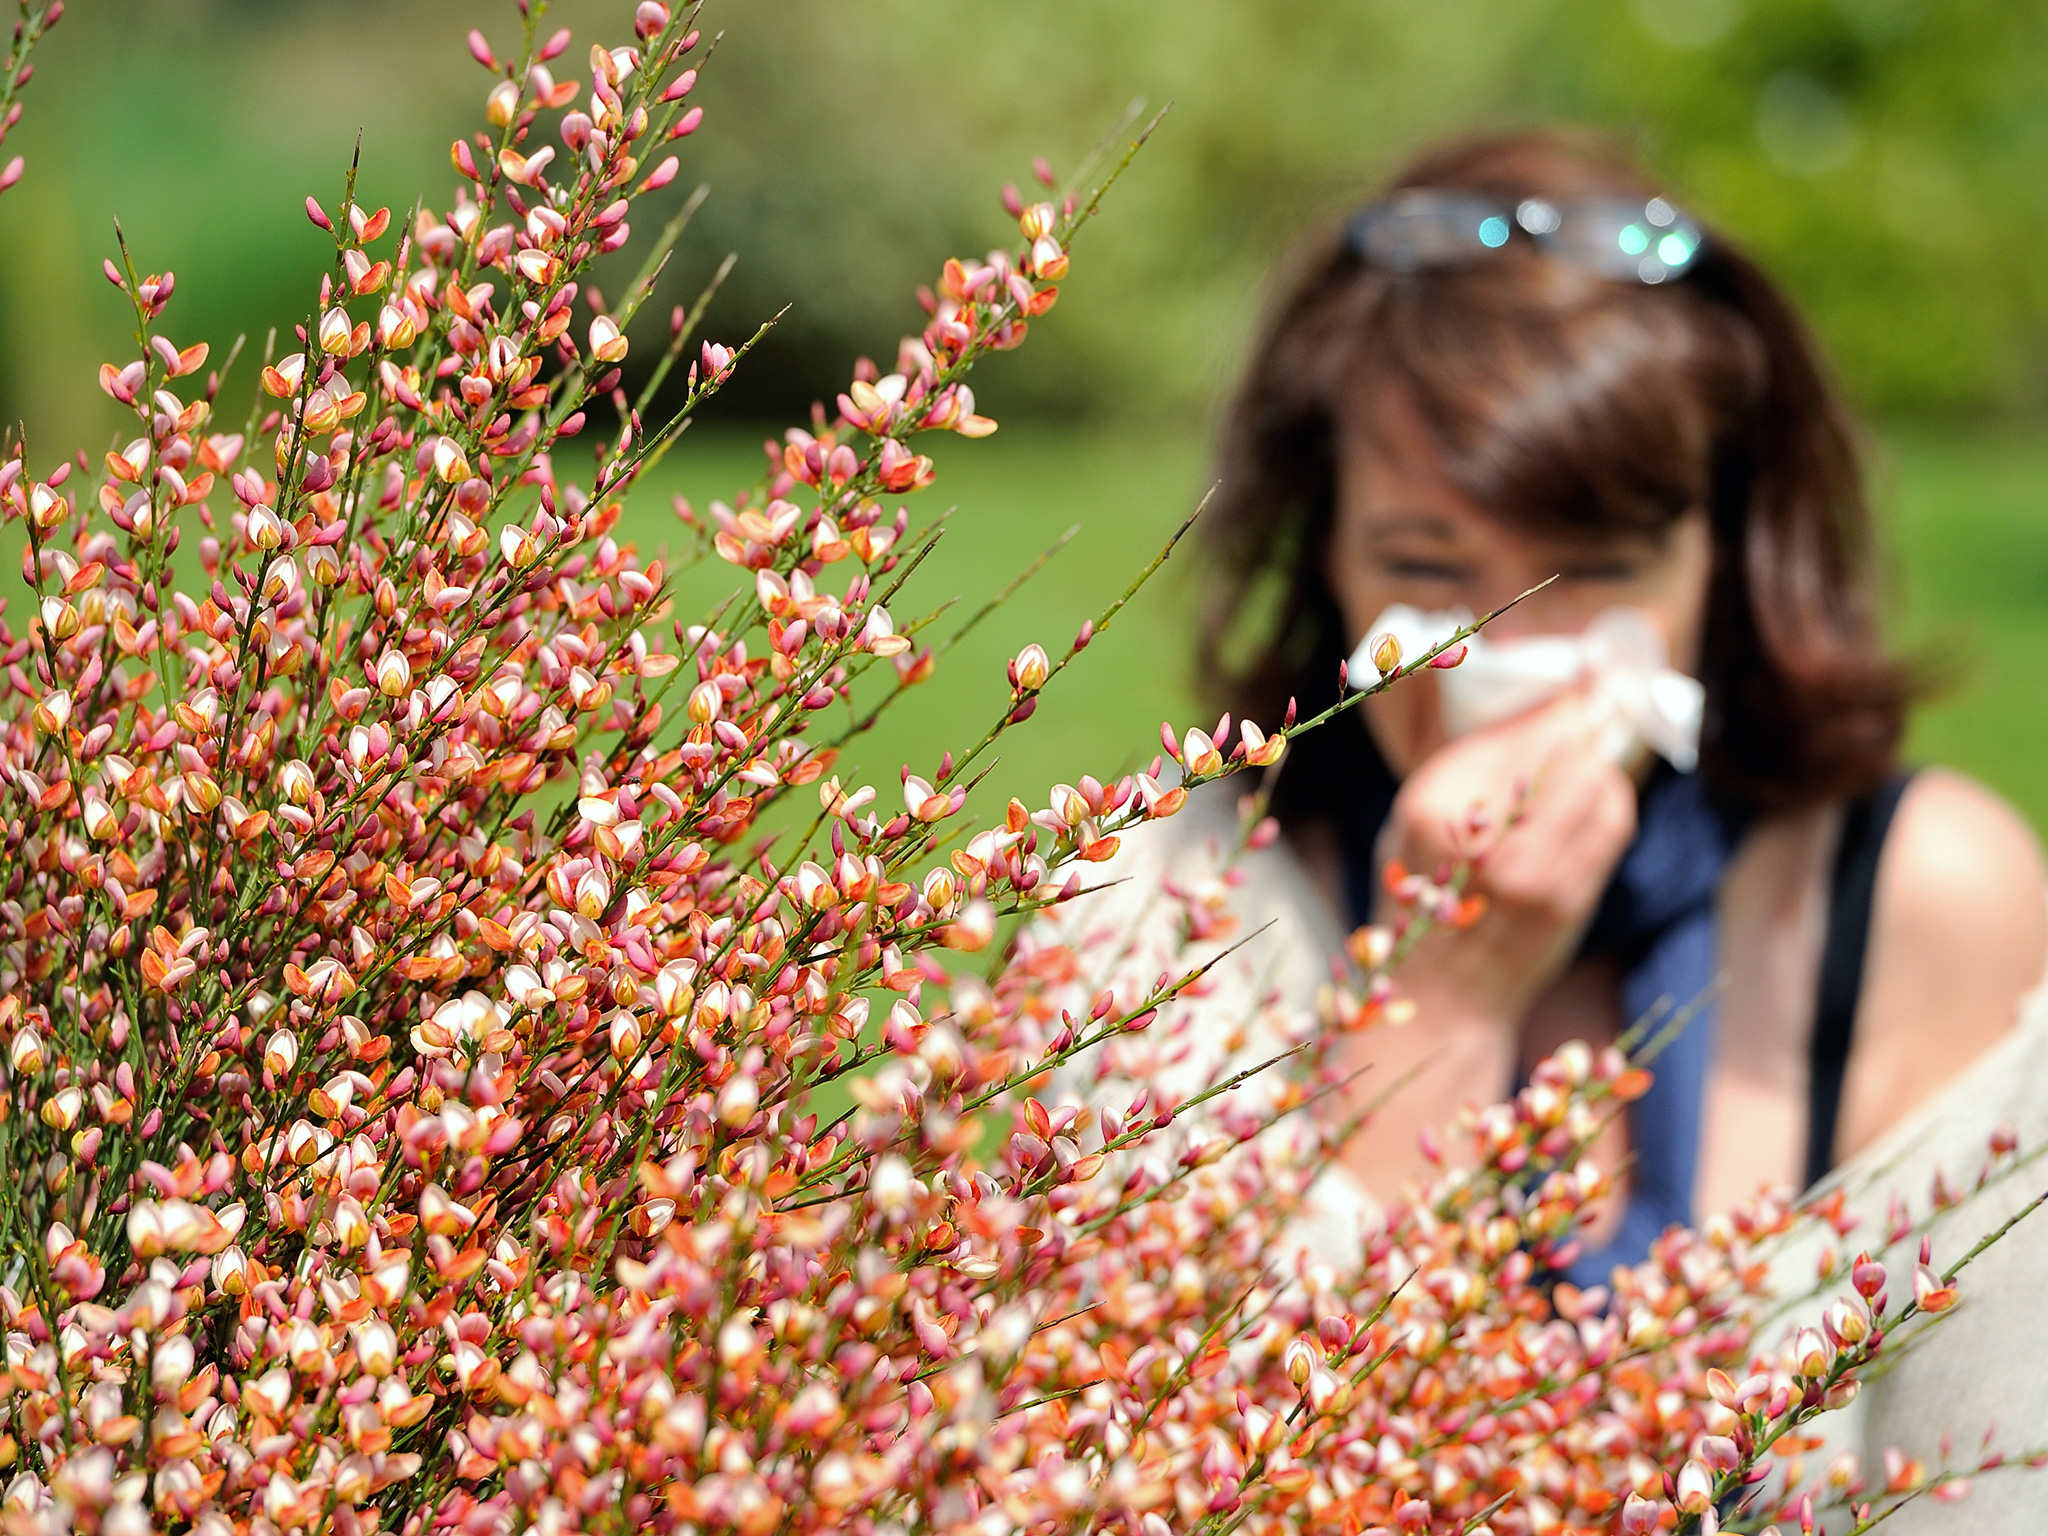 Different Types Of Allergy That You May Experience In Your Life